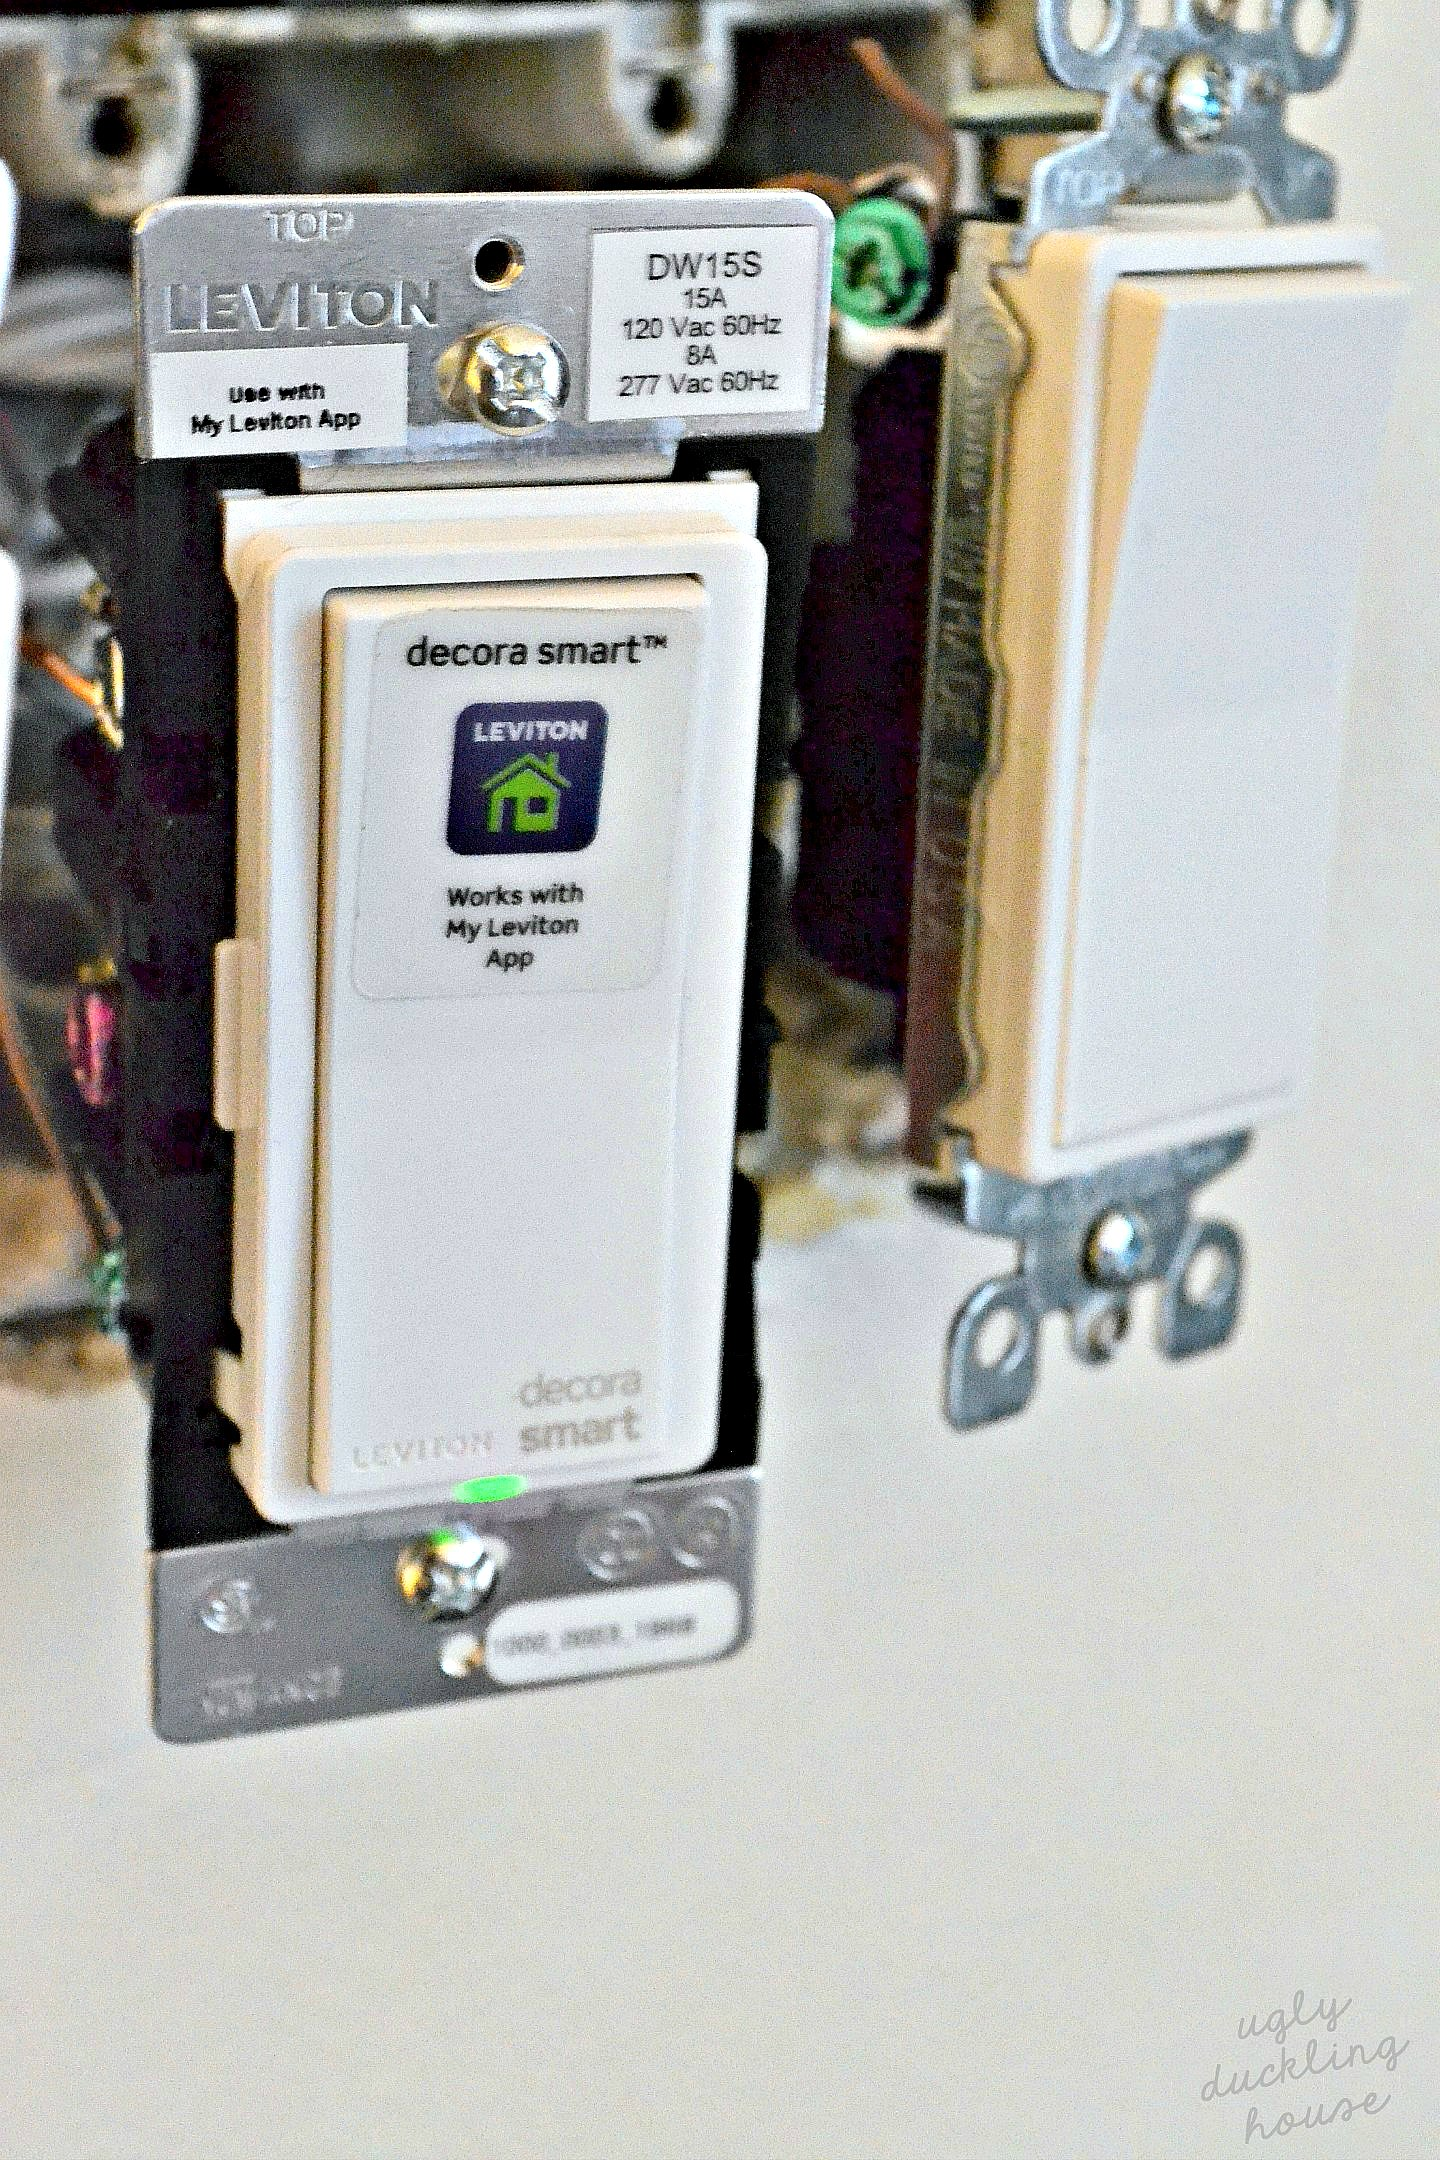 Leviton Decora Smart Review — My Favorite Smart Home Upgrade!